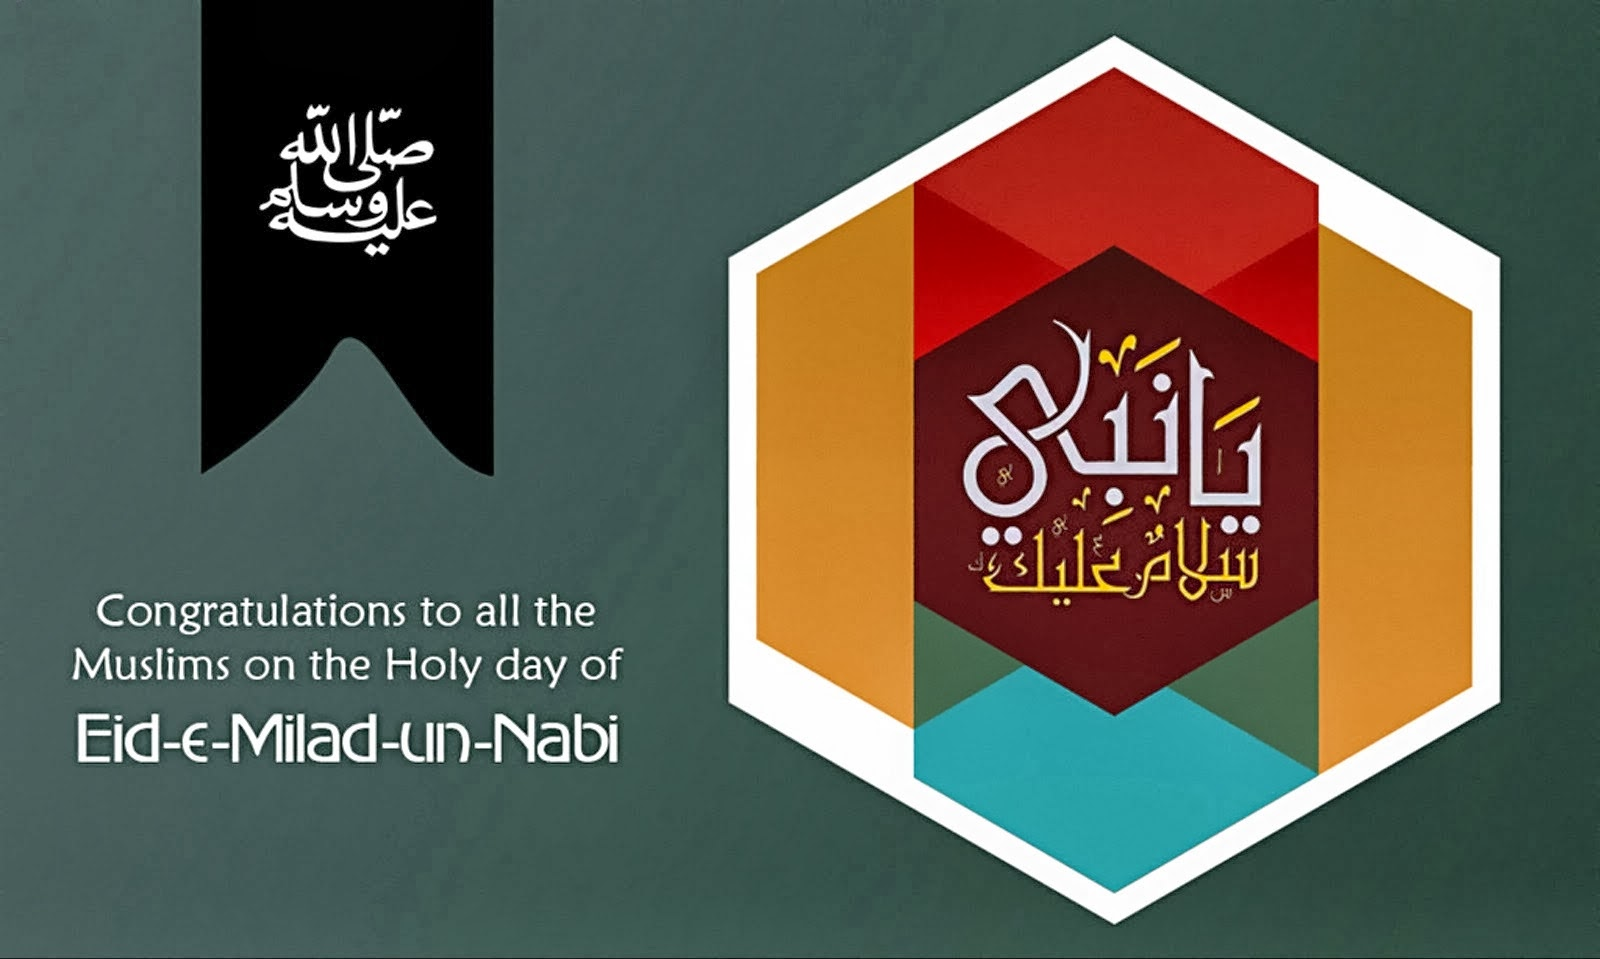 Eid milad un nabi wallpaper with wishes happiness style kristyandbryce Choice Image